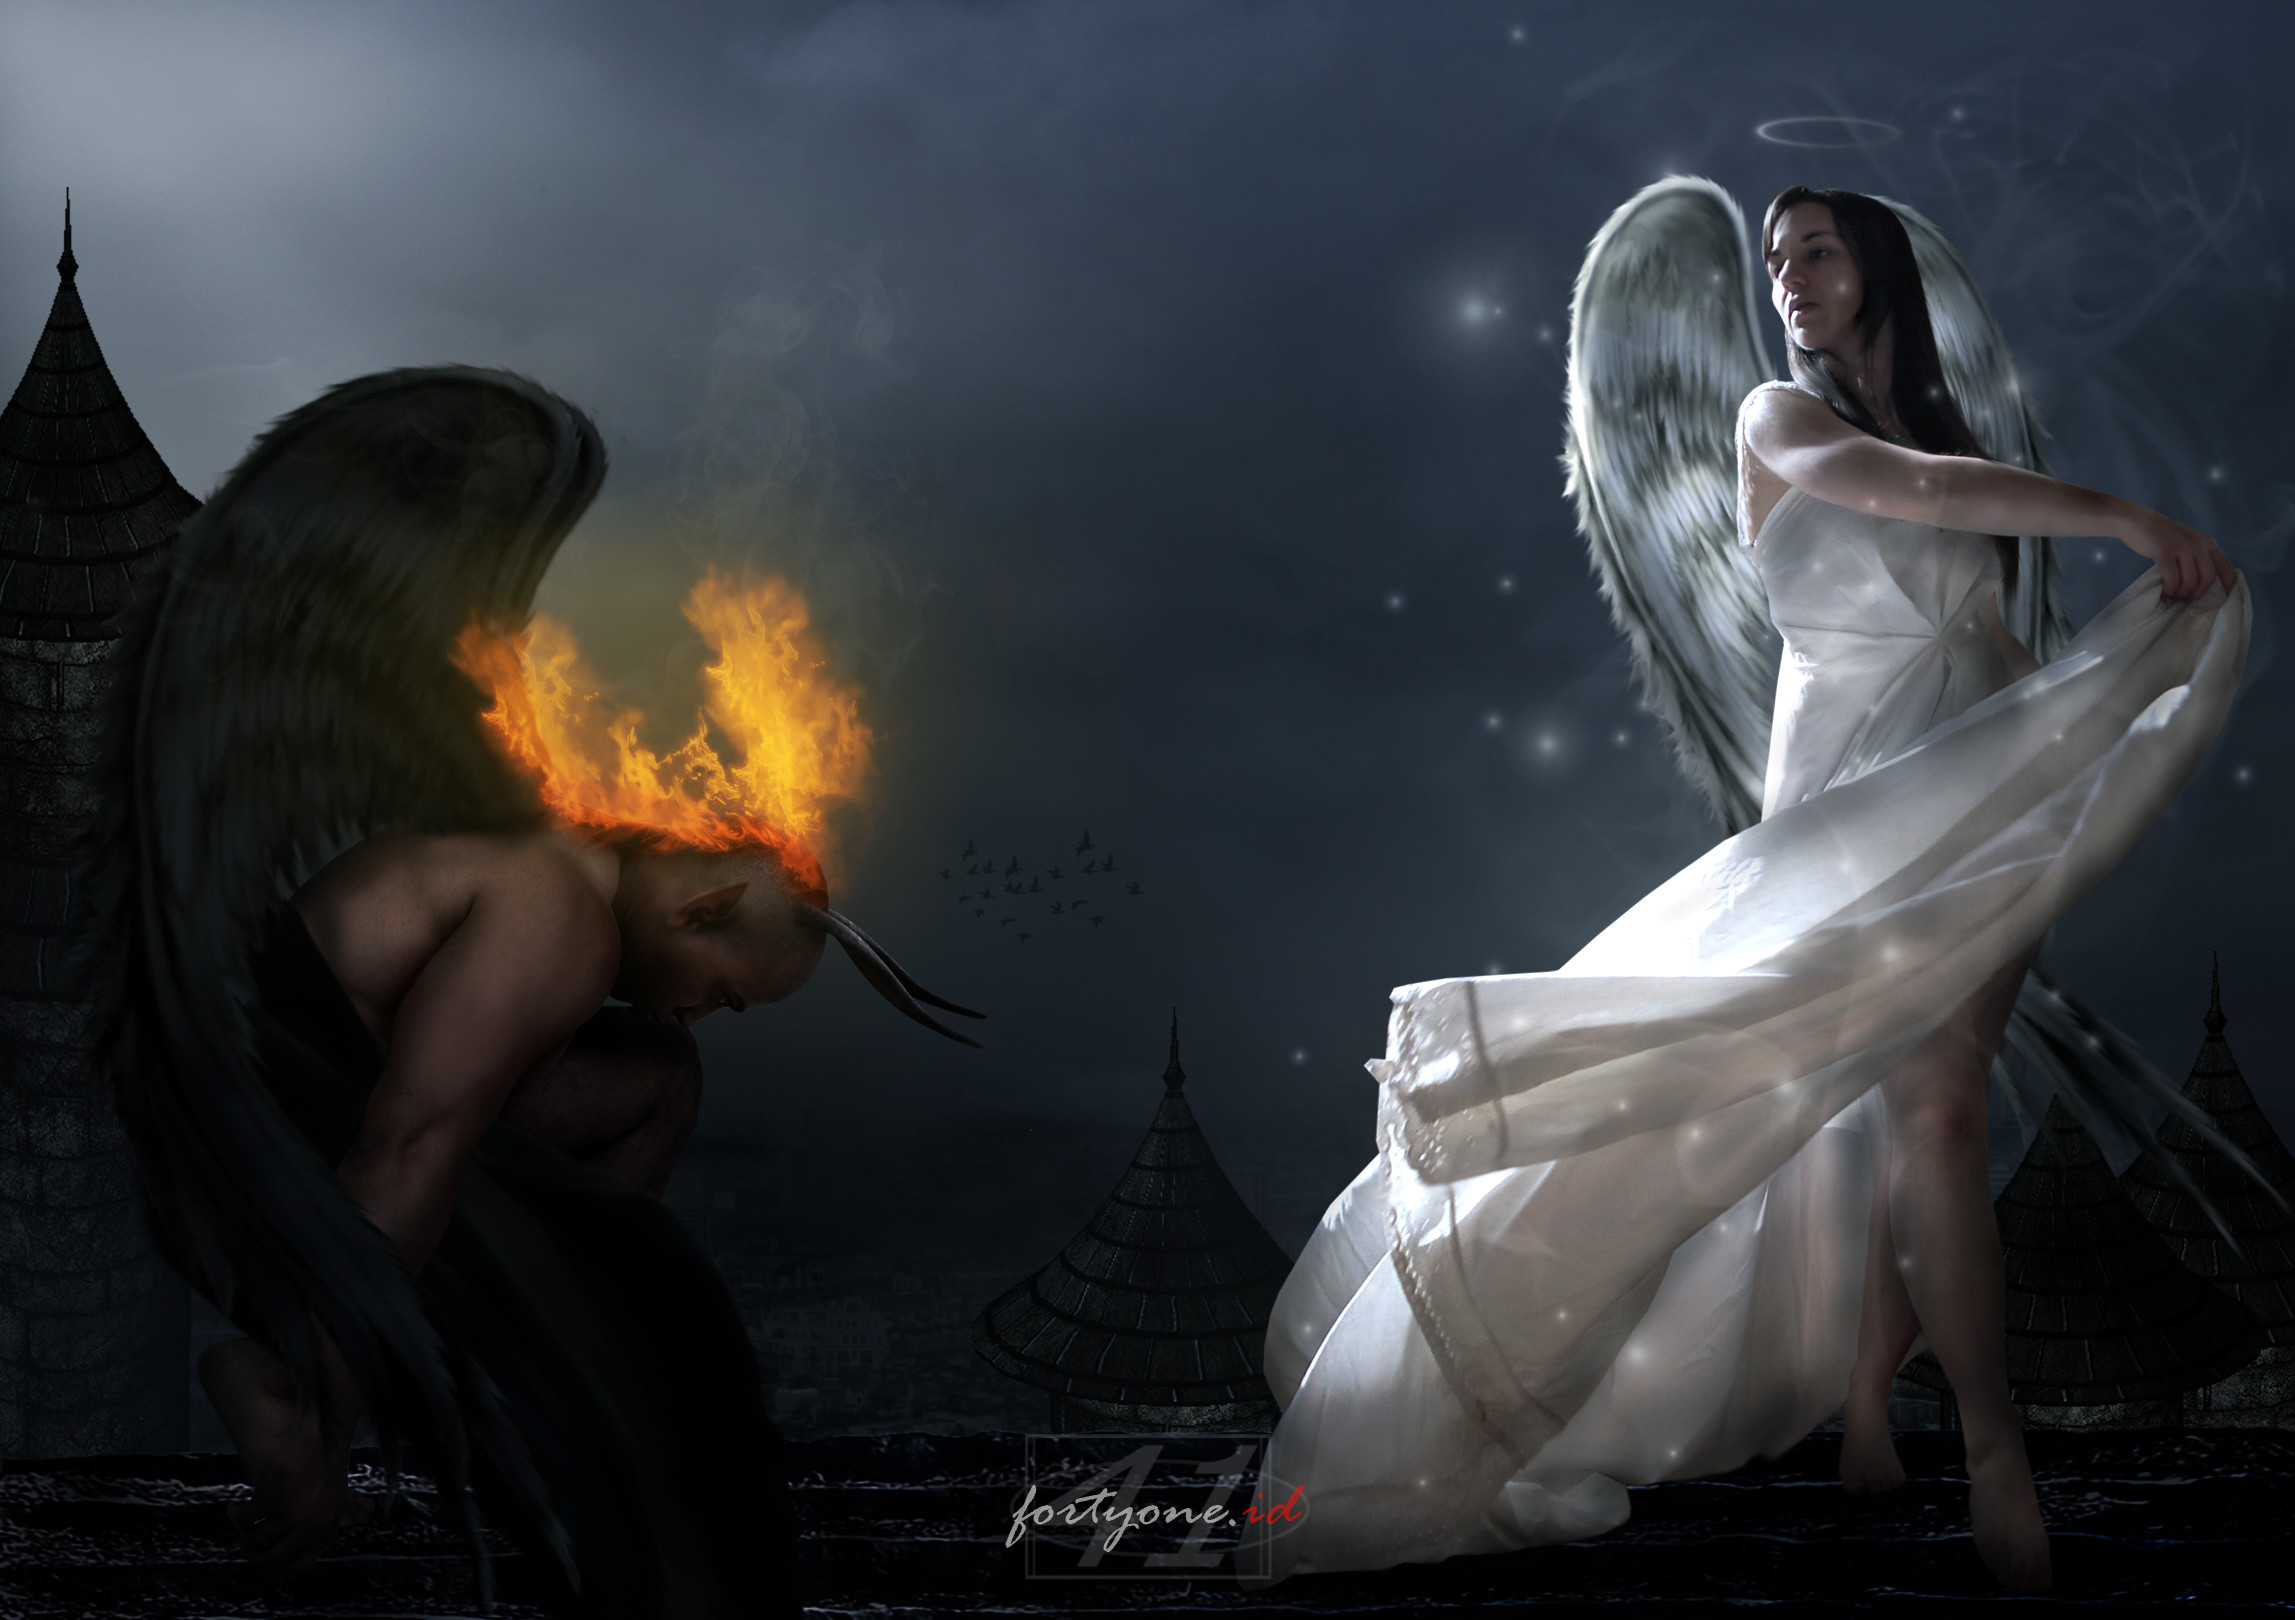 2295x1620 Demon and Angel wallpaper from Angels wallpapers